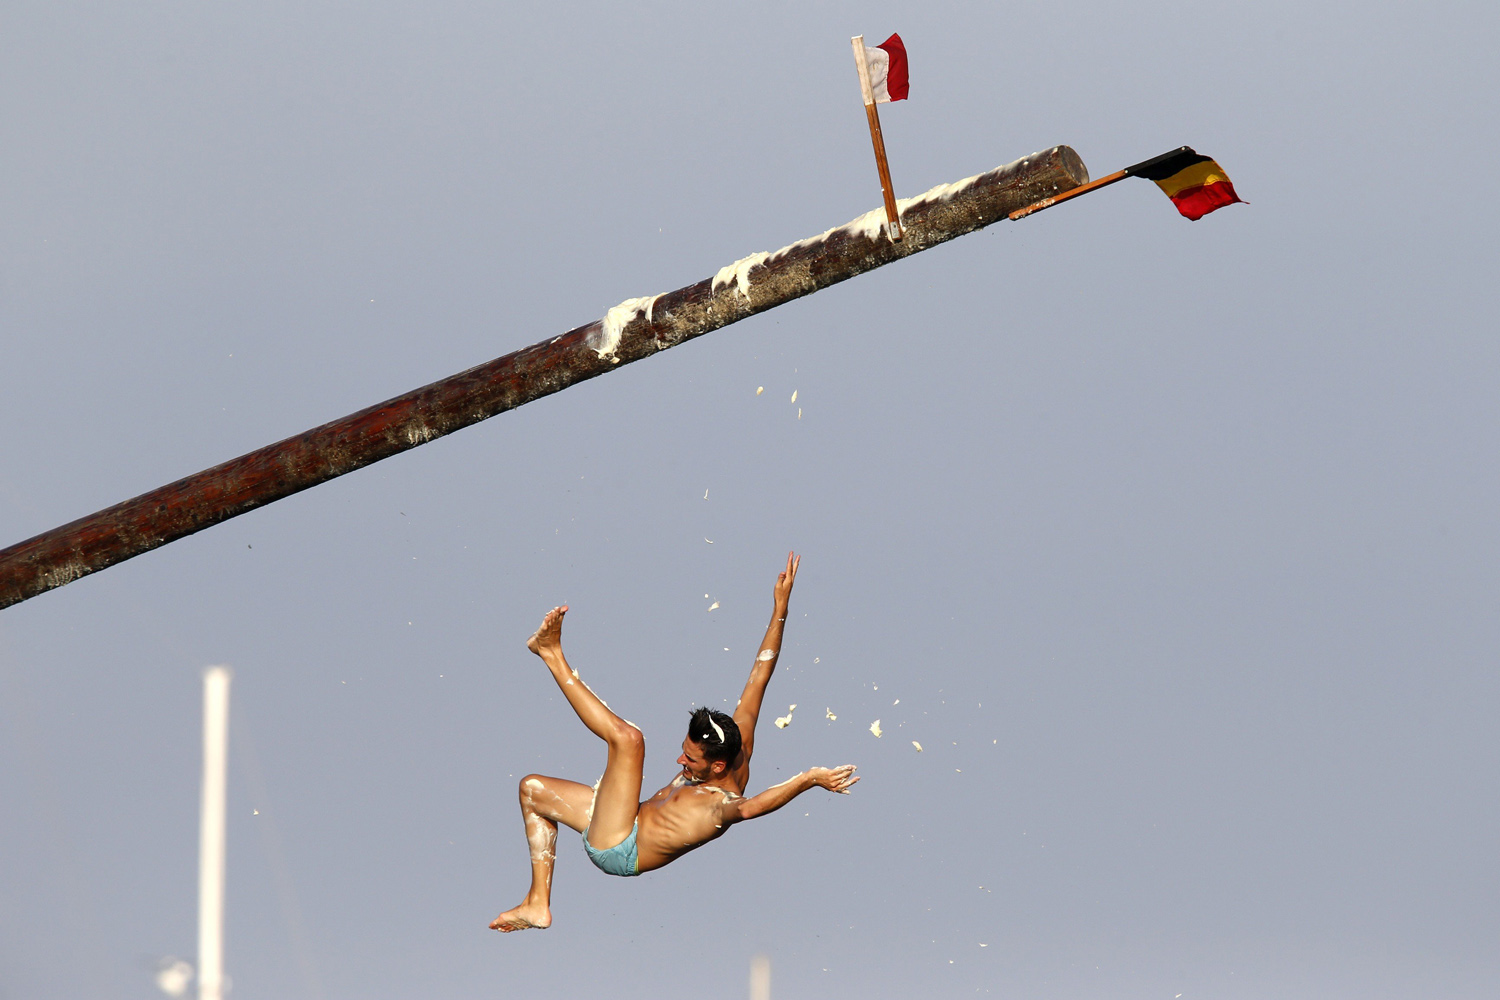 Aug. 31, 2014. A man falls off the  gostra , a pole covered in grease, during the celebrations for the religious feast of St Julian, patron of the town of St Julian's, outside Valletta.